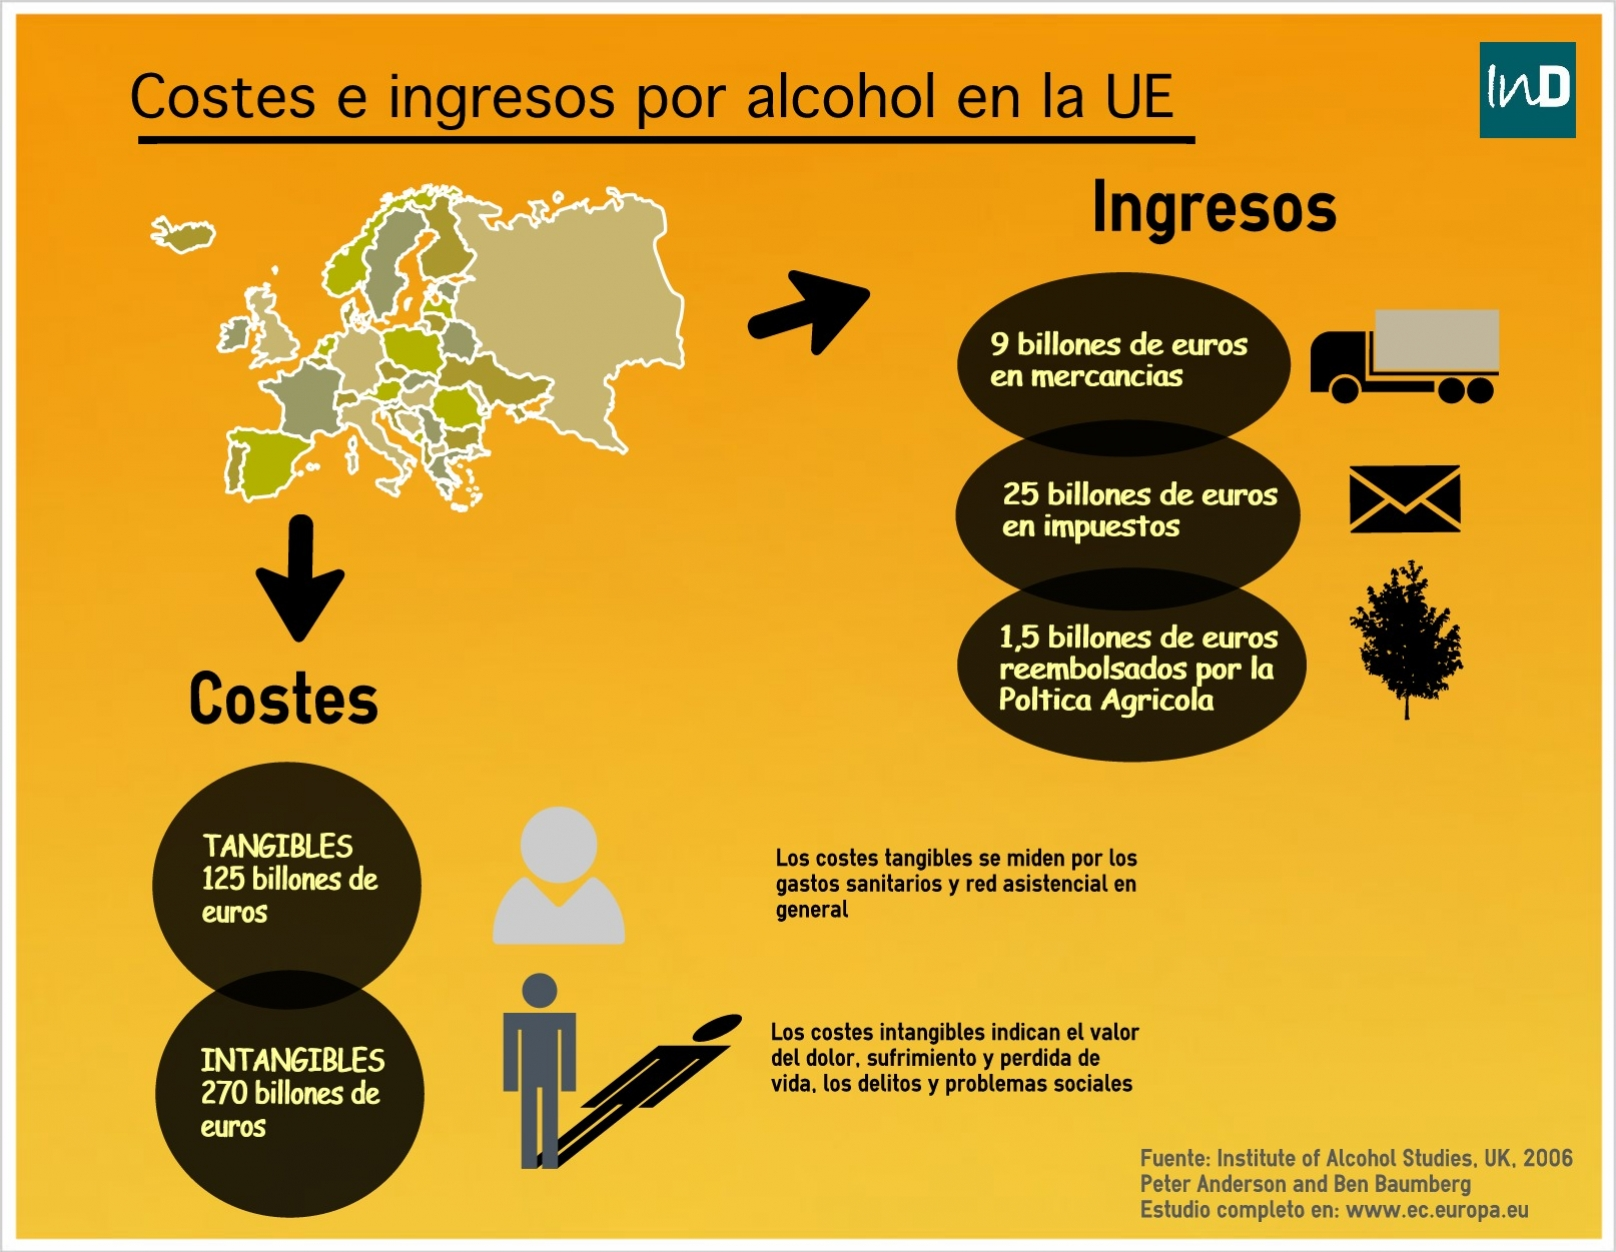 Costes e ingresos por alcohol en la Unión Europea